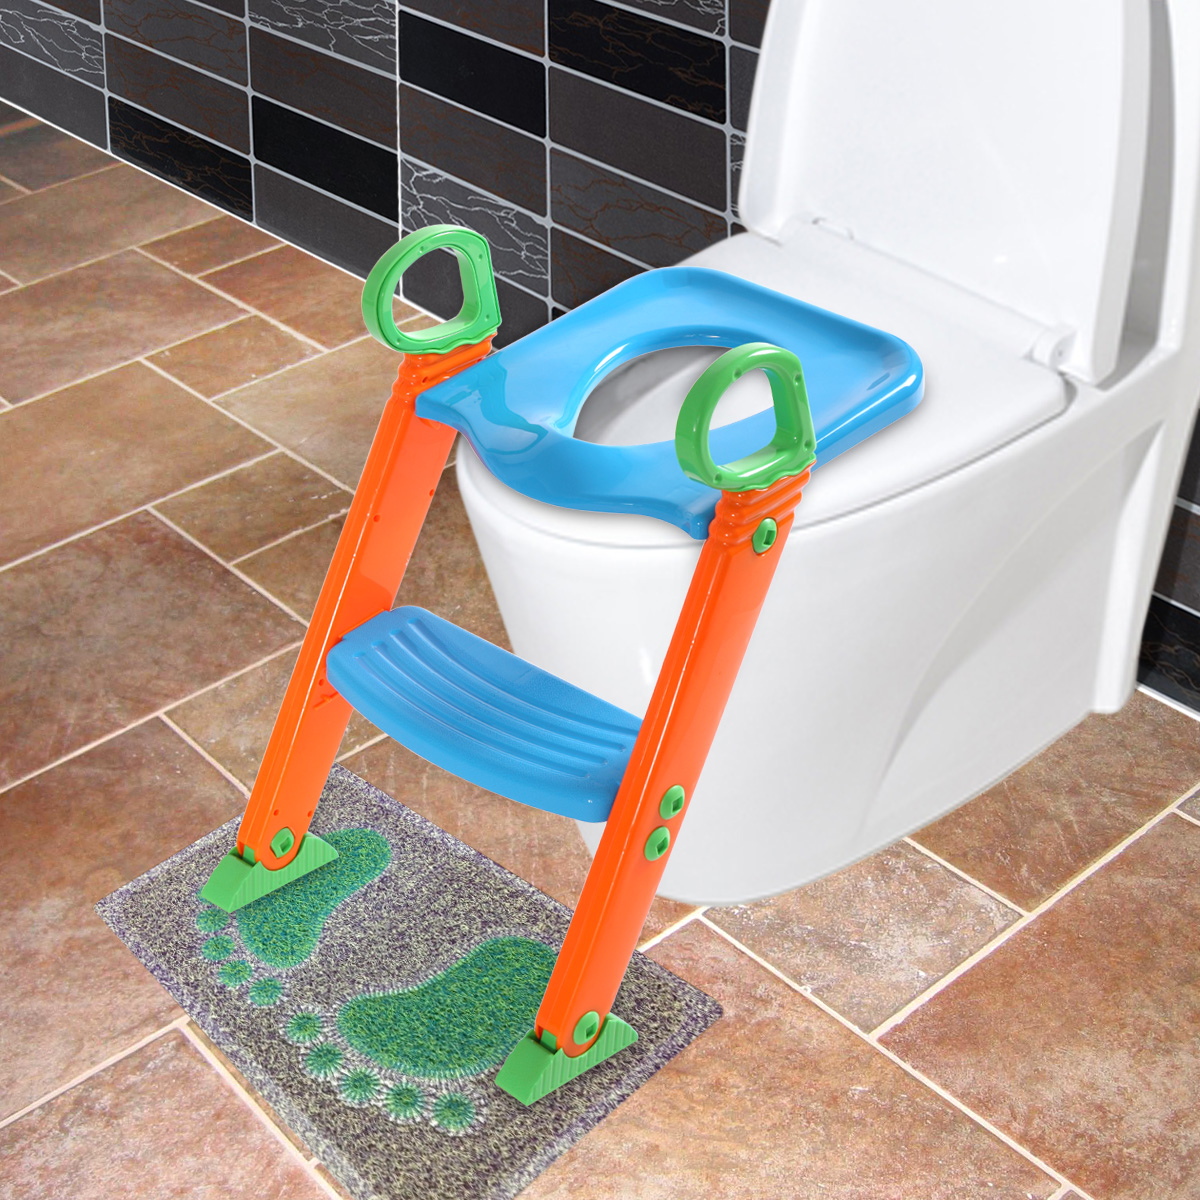 Jaxpety Kids Training Toilet Trainer Toilet Seat Chair Toddler With Ladder Step Up Stool by JAXPETY